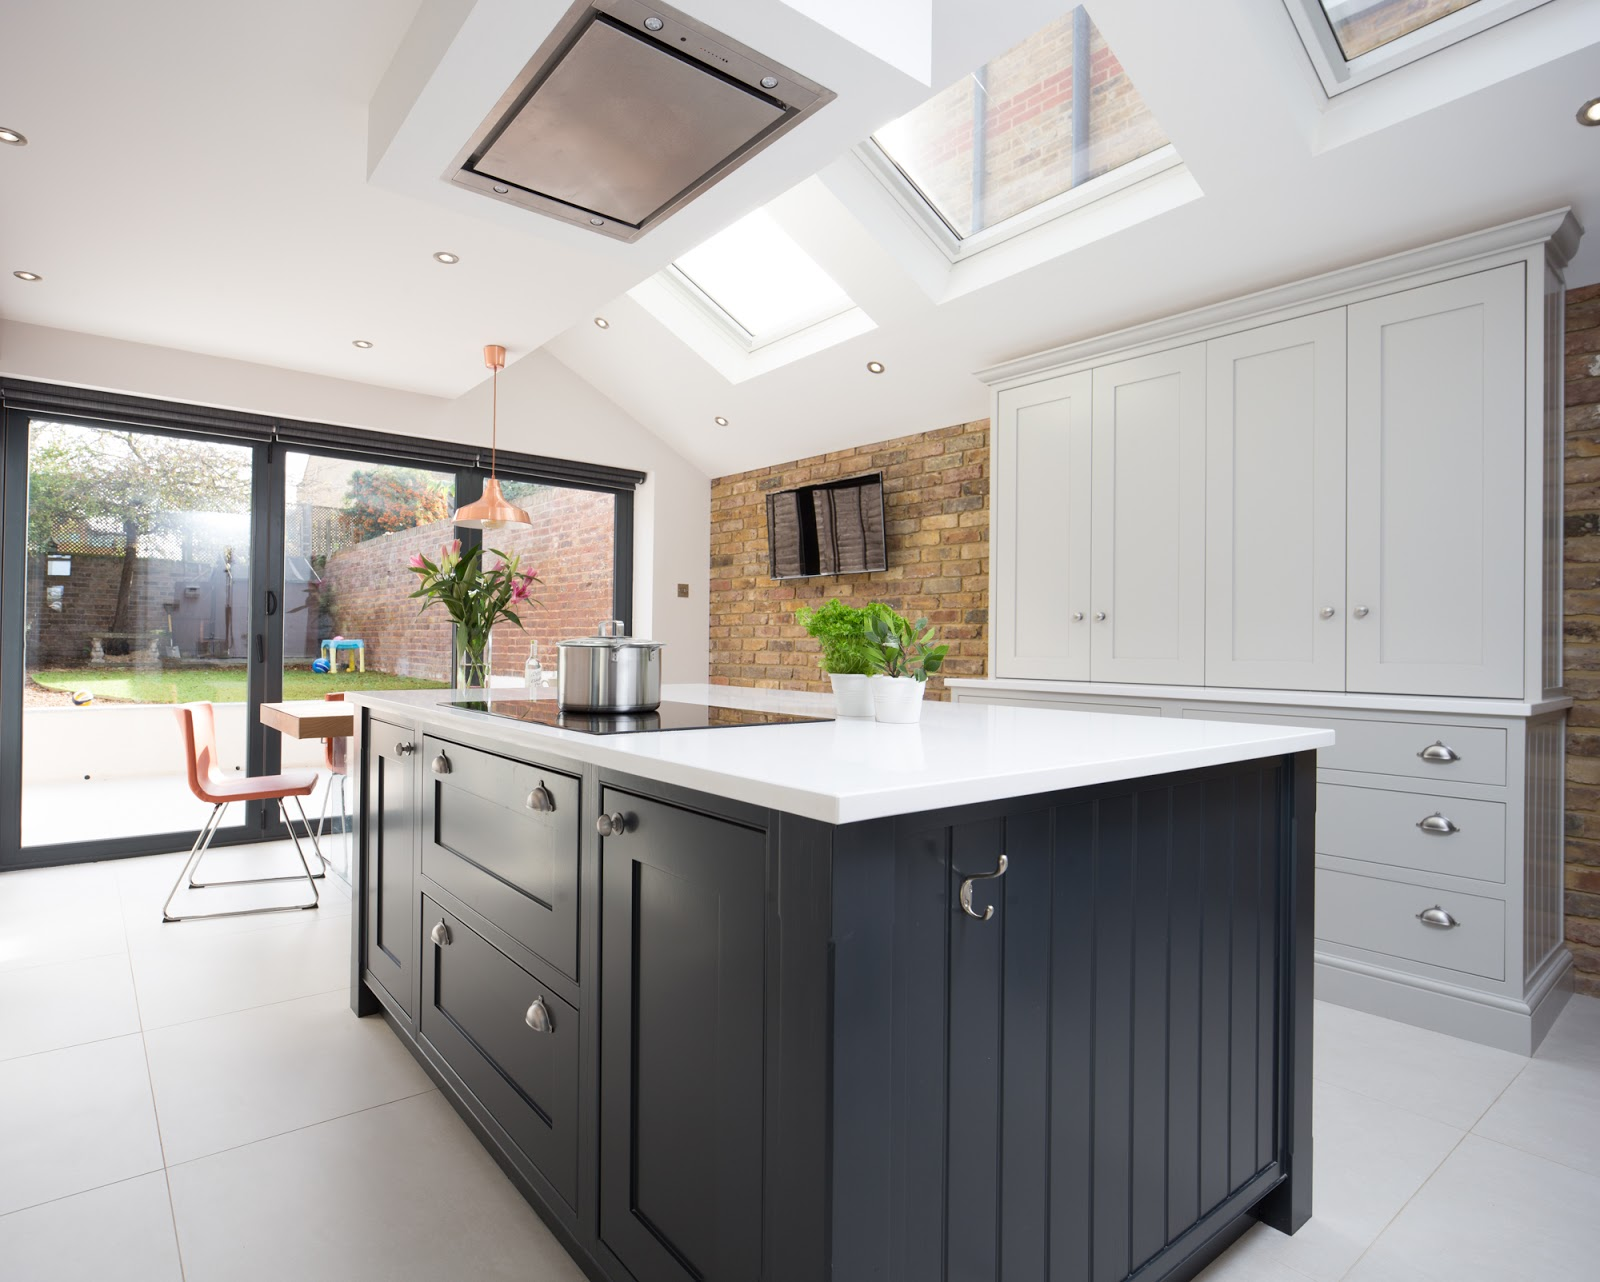 Maple & Gray: Pale grey and charcoal kitchen